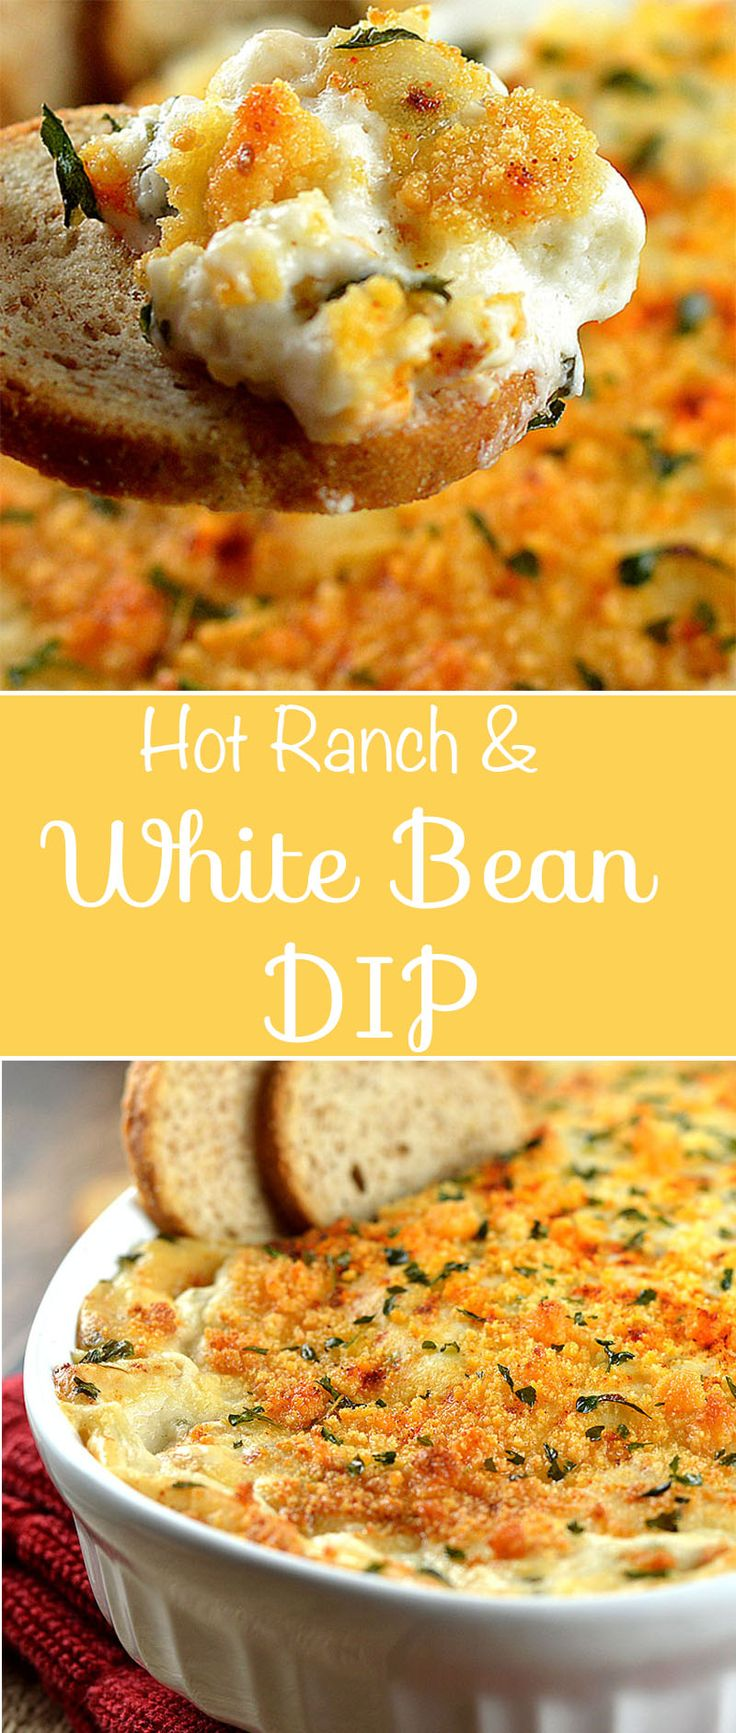 Hot Ranch and White Bean Dip by The Veg Life!